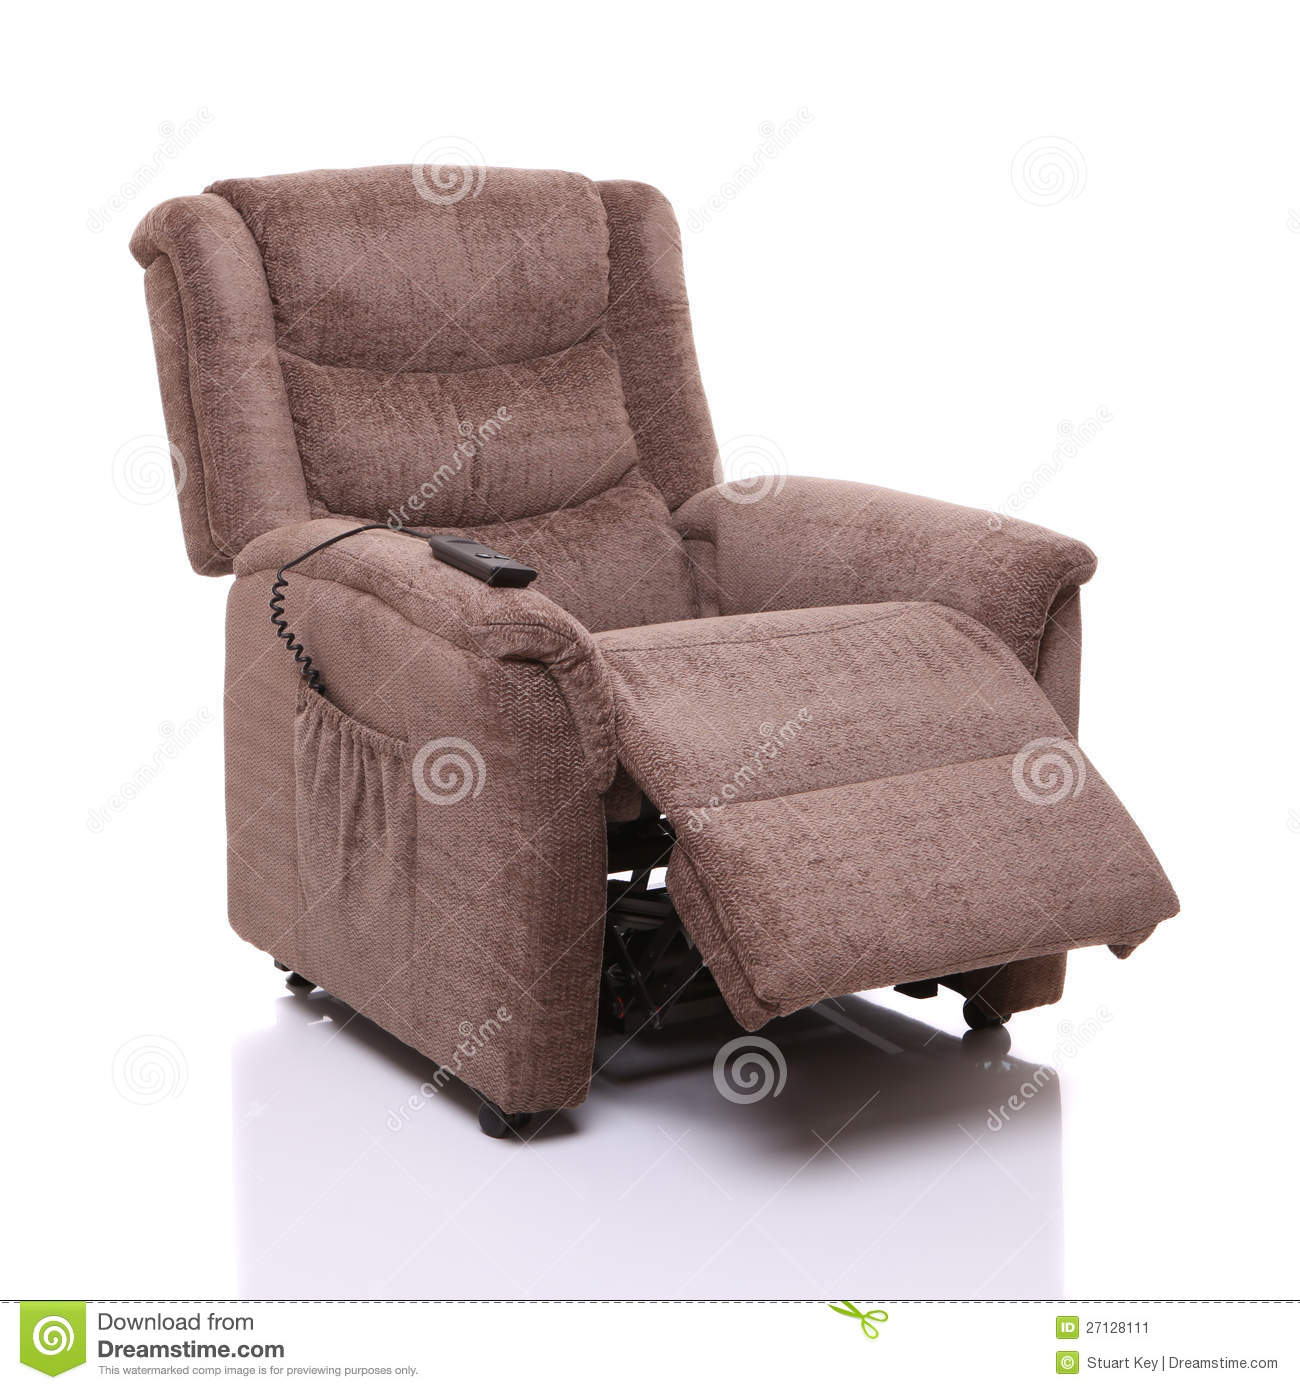 Rise and recline chair, partially reclined. A recliner chair with electric remote  controlled ... - Rise And Recline Chair, Partially Reclined. Stock Image - Image